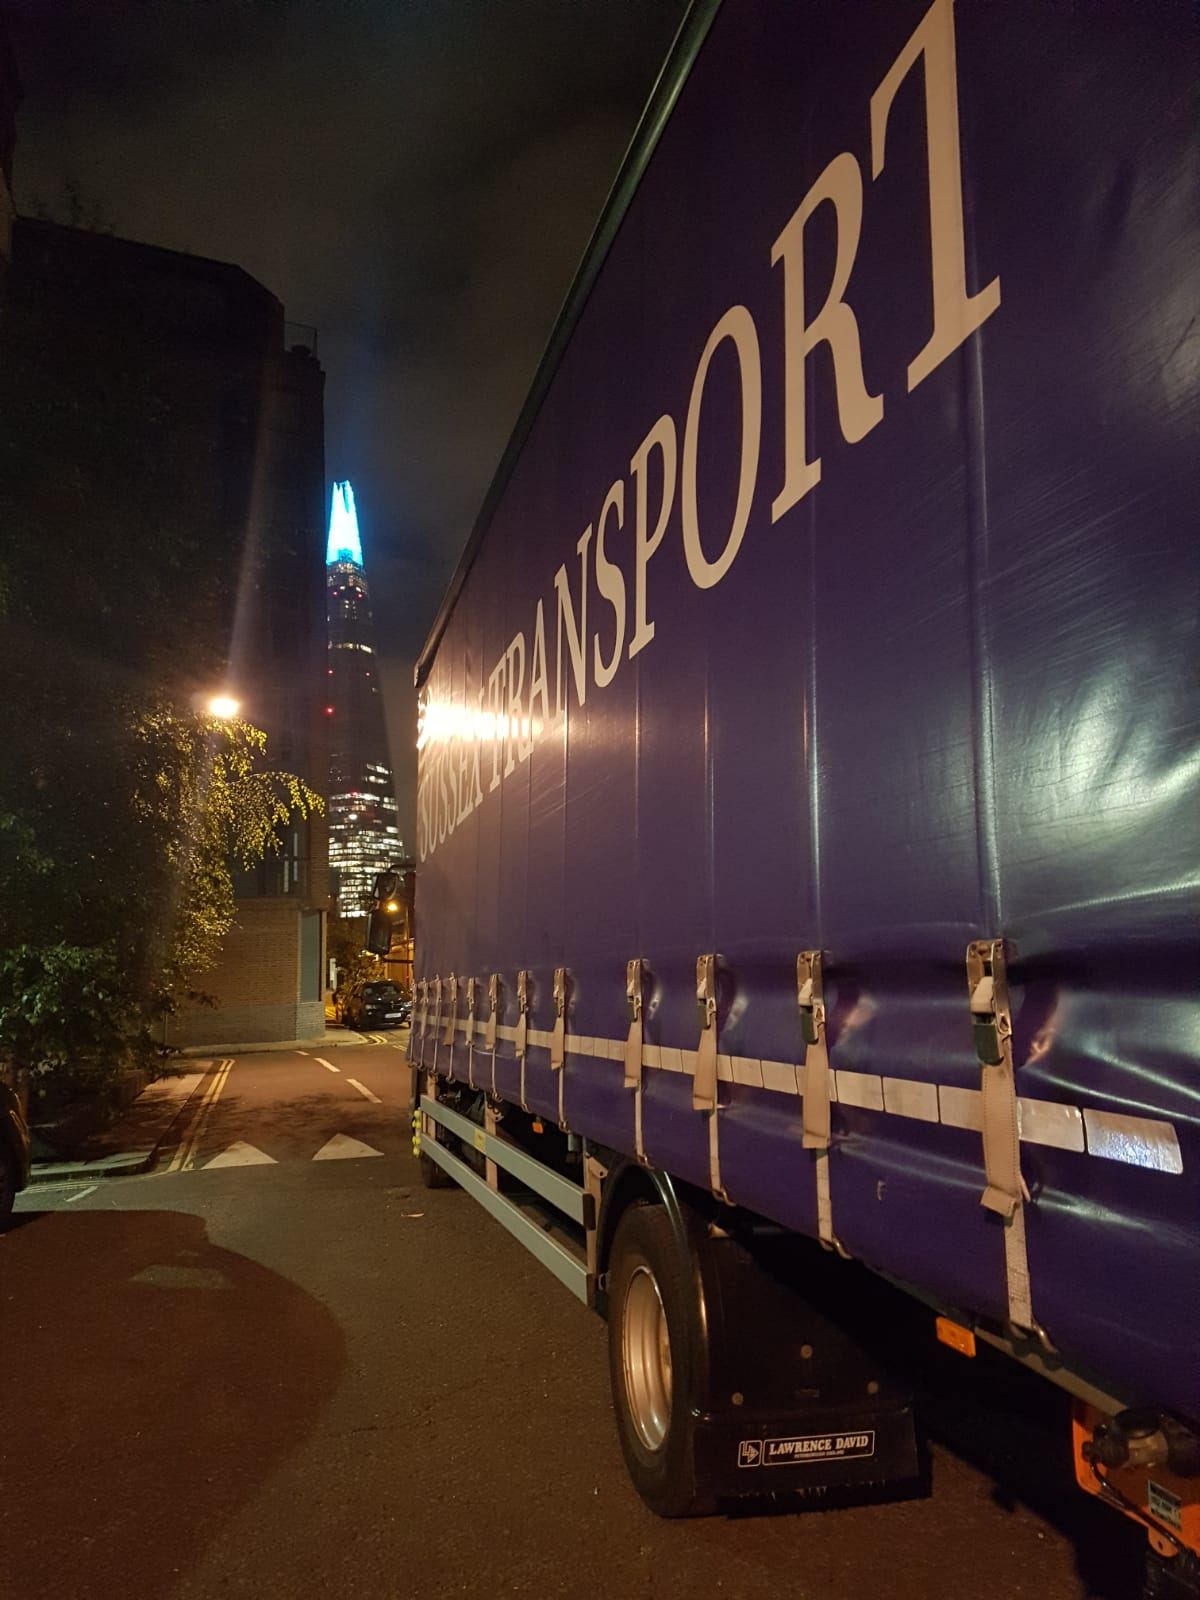 Nightime Deliveries London